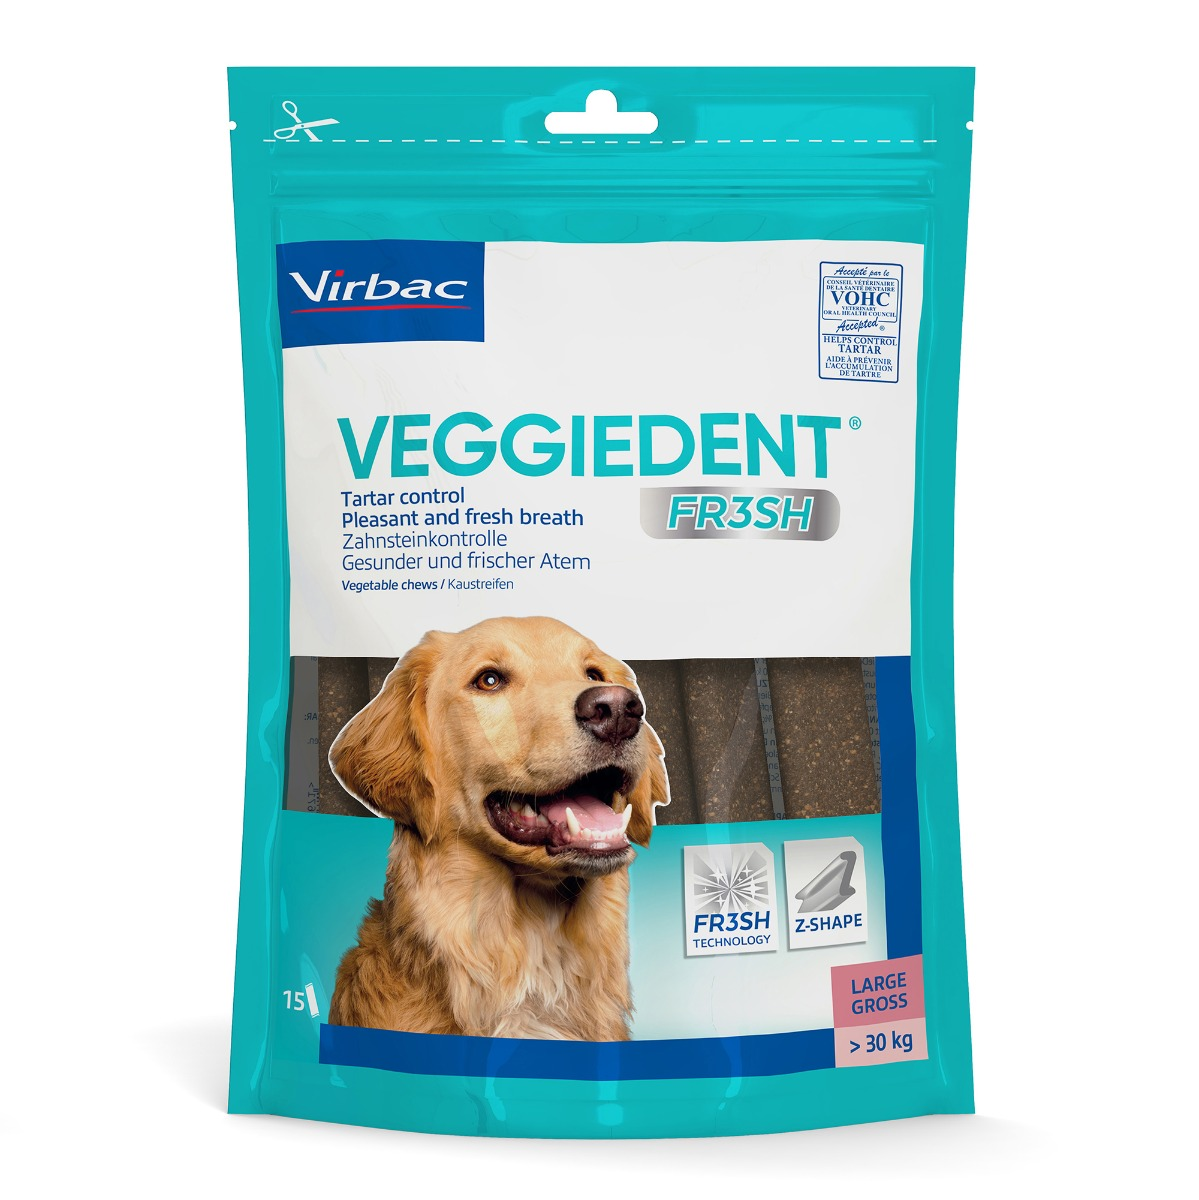 Veggie Dent Chews - Pack of 15 - Large on Animed Direct